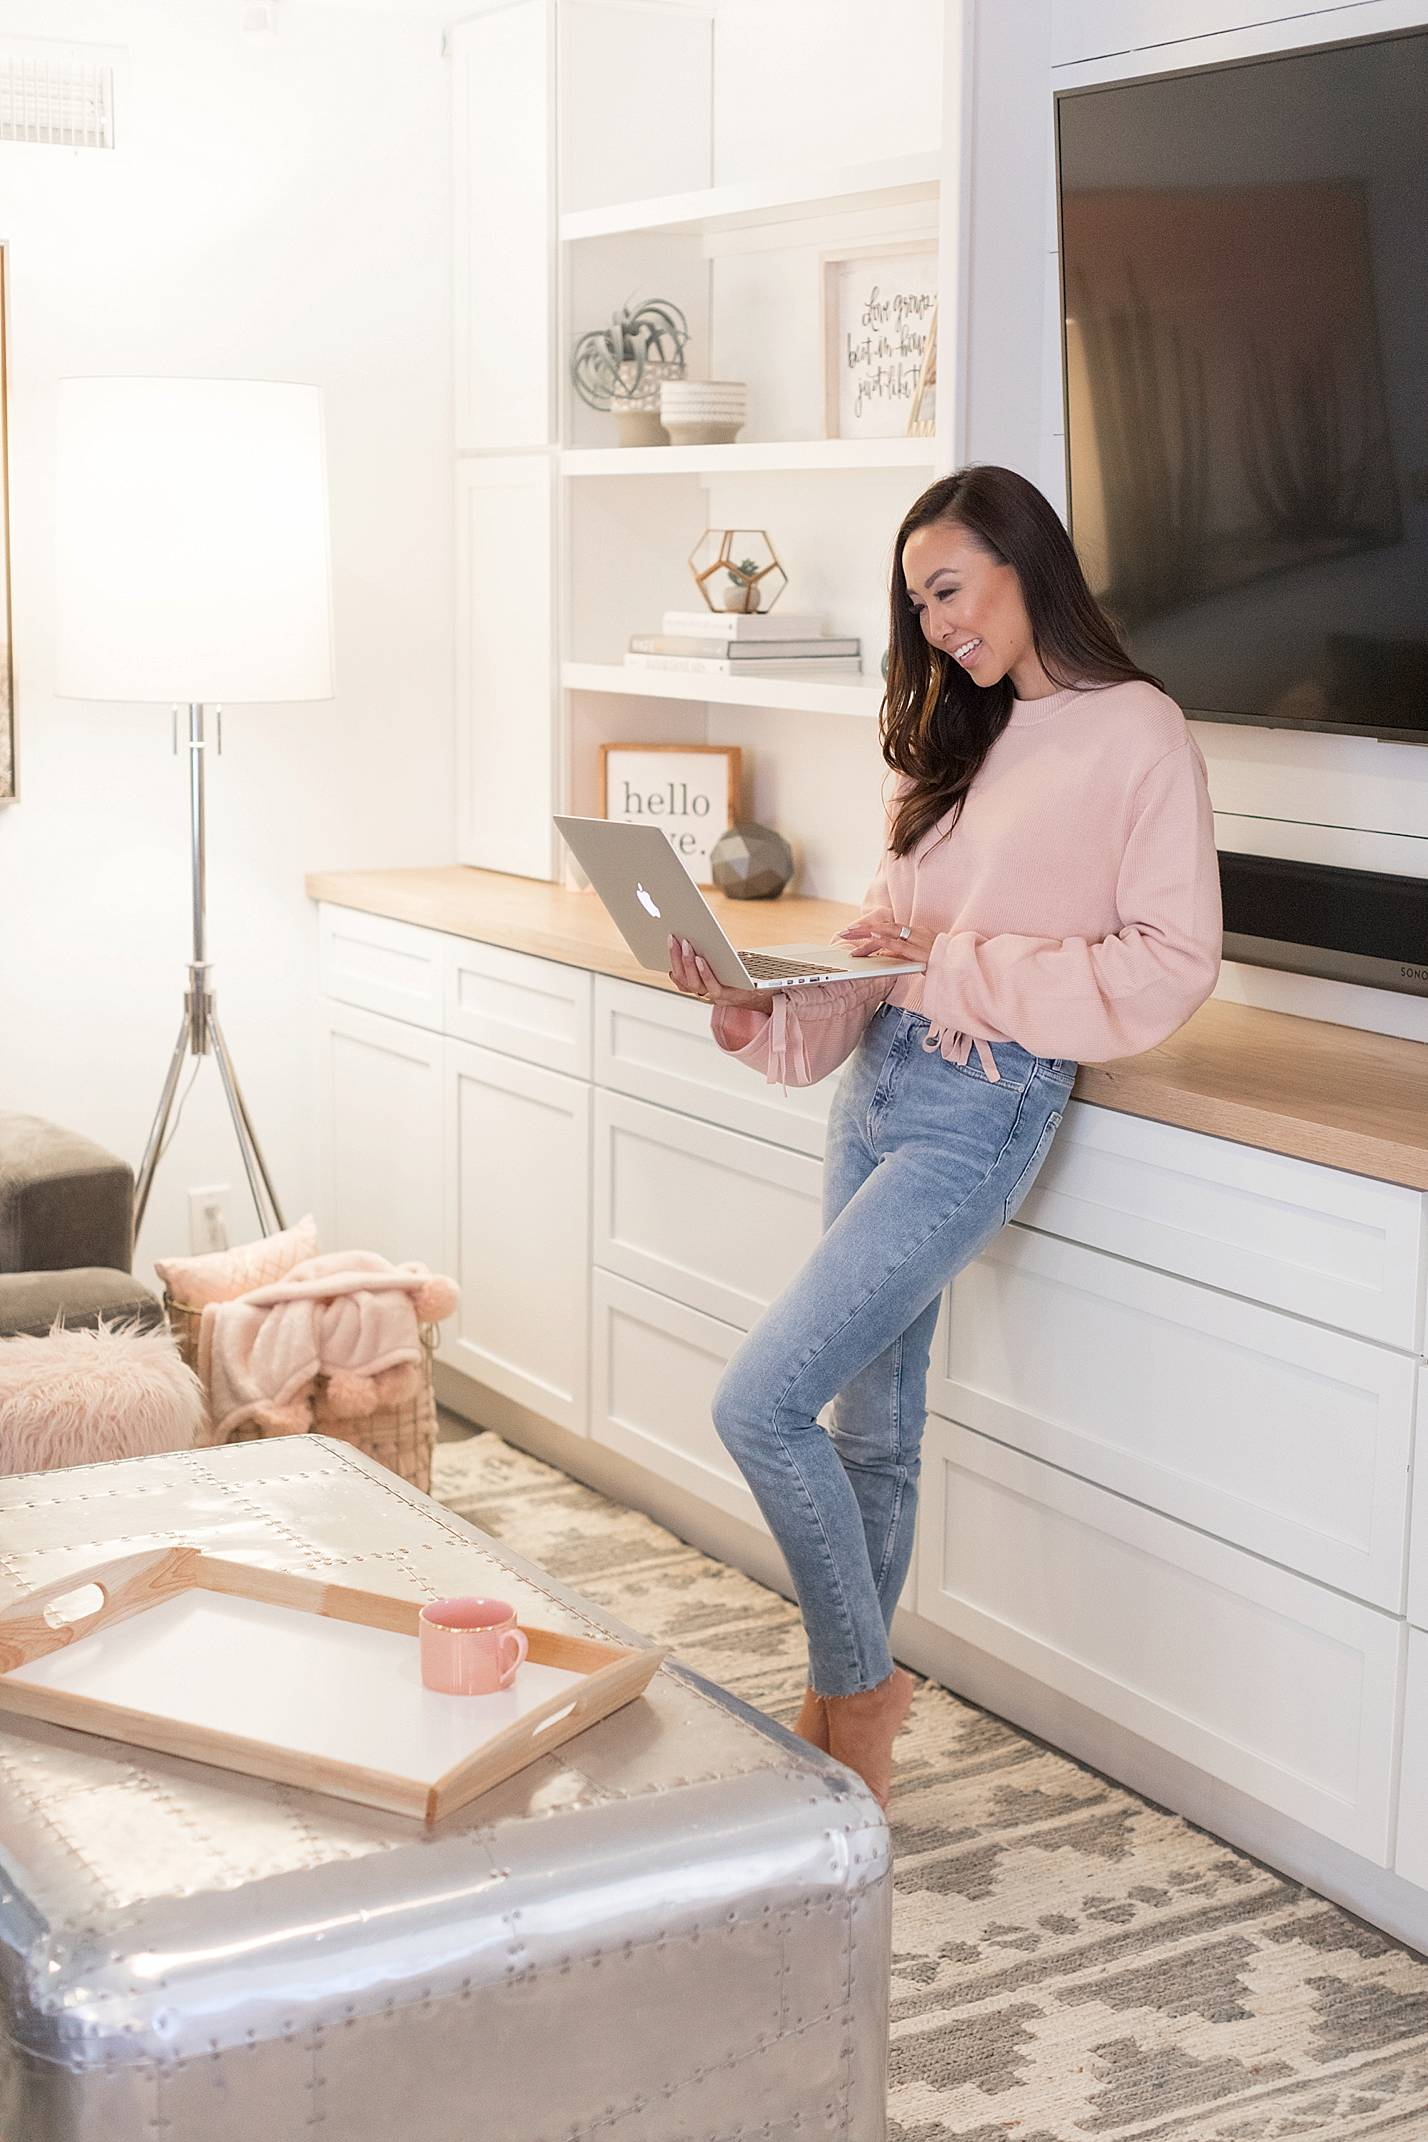 lifestyle tech blogger diana Elizabeth on laptop Wireless router by Norton Core security fits well into home decor